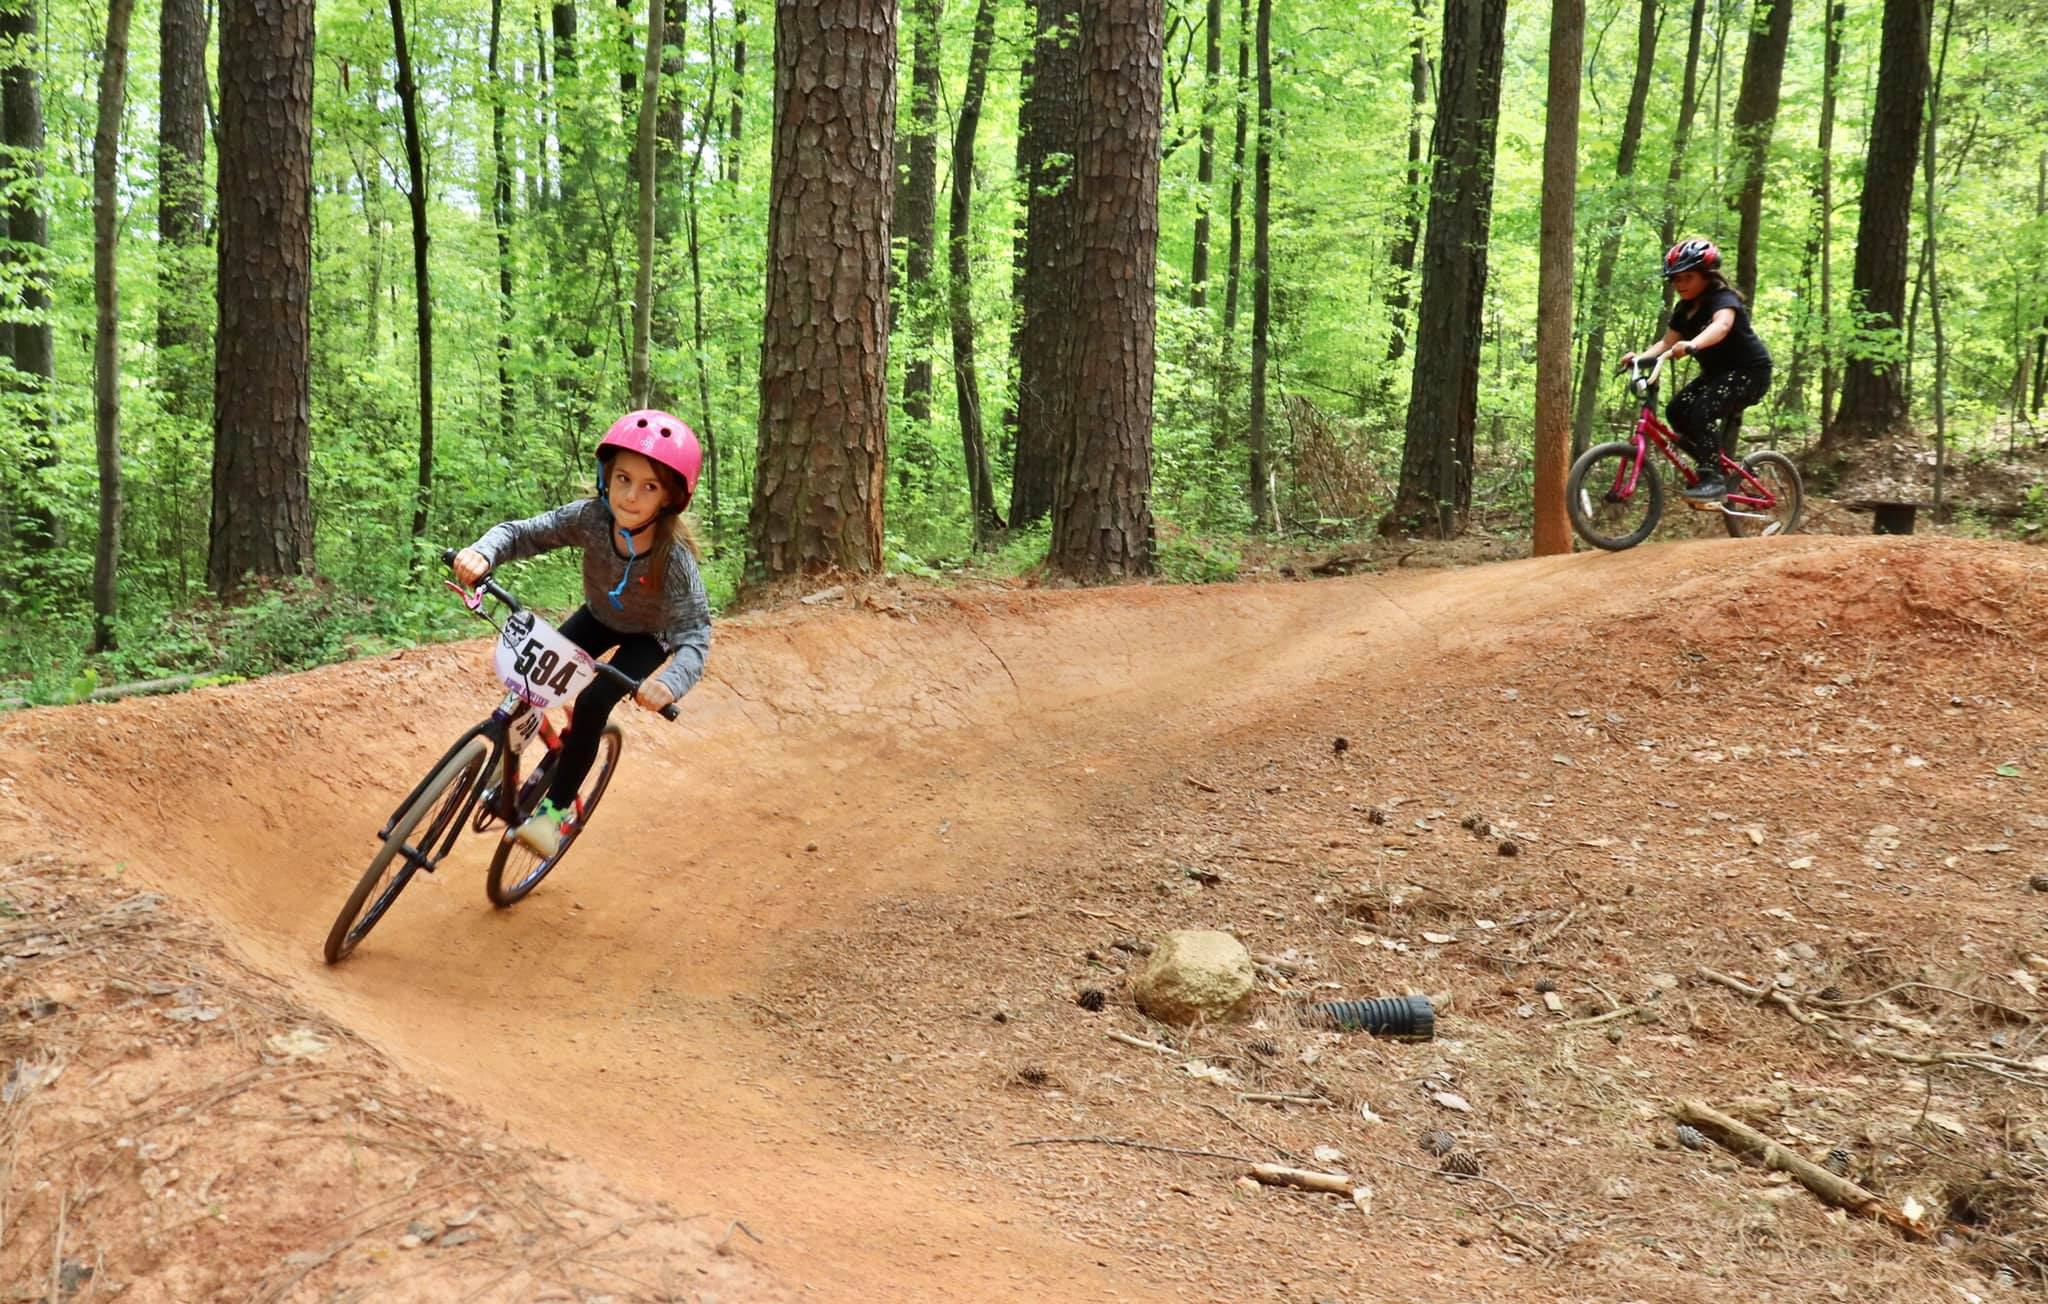 A North Carolina County Will Micro-Manage a Bike Park and Modify Trails Because There Have Been too Many Crashes - Singletracks Mountain Bike News